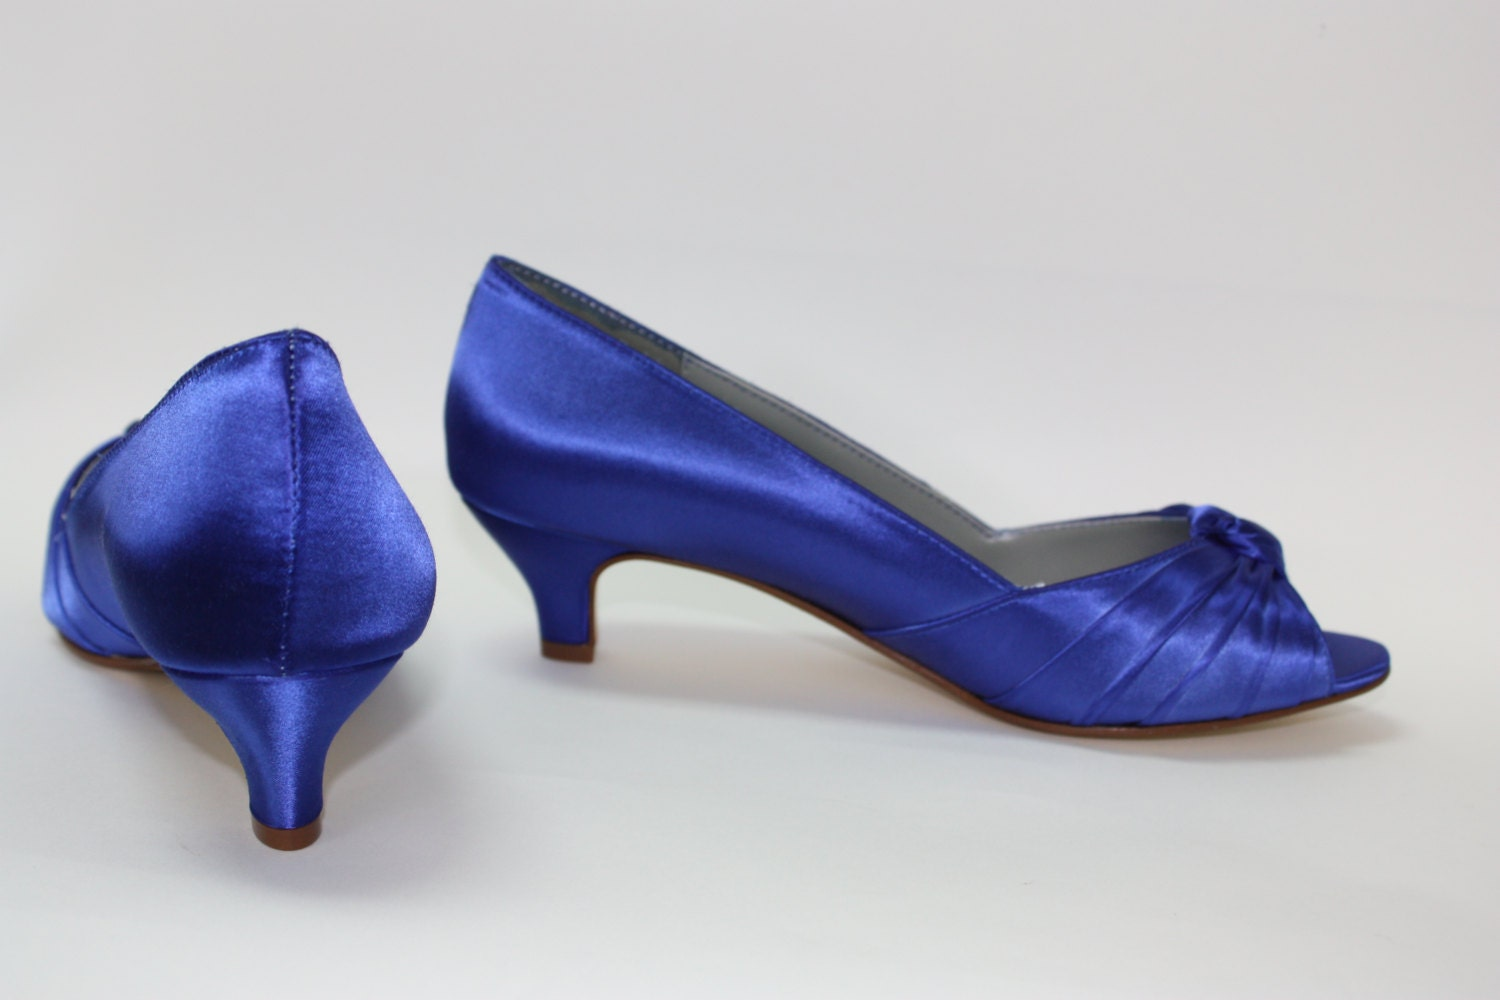 Royal Blue Wedding Shoes Choose From Over 100 Colors By Parisxox